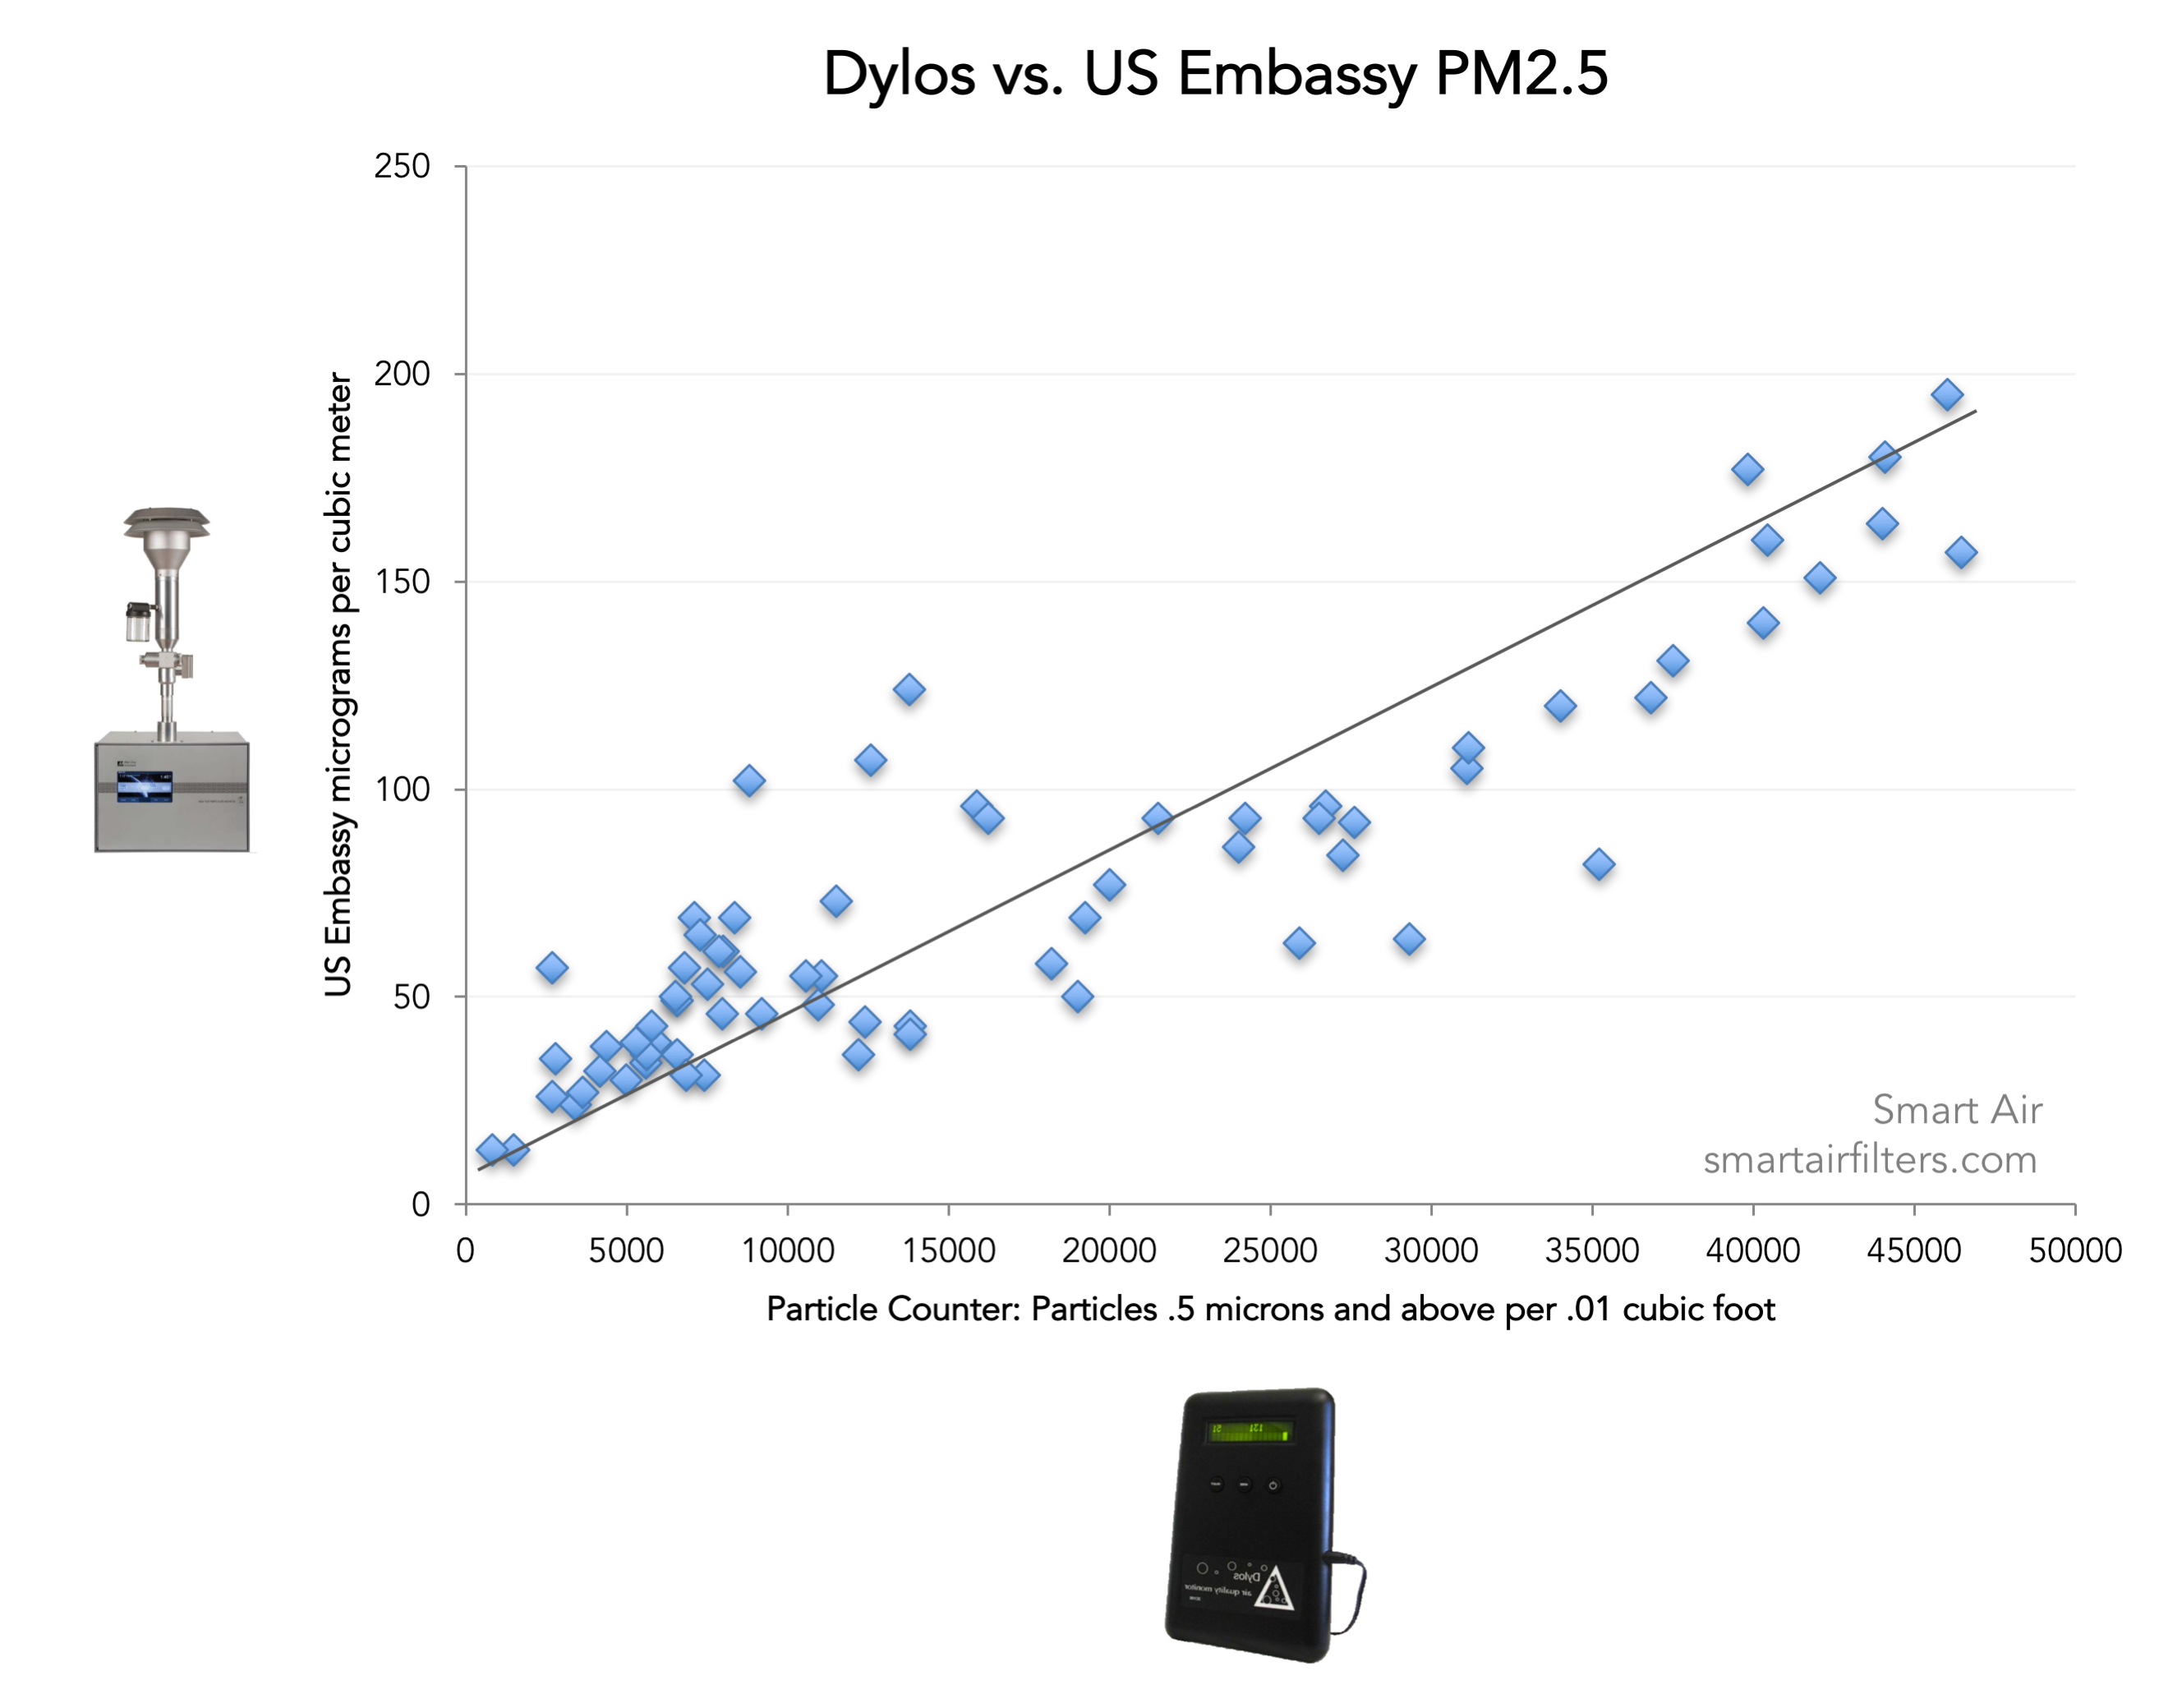 Dylos particle counter versus EBAM Monitor